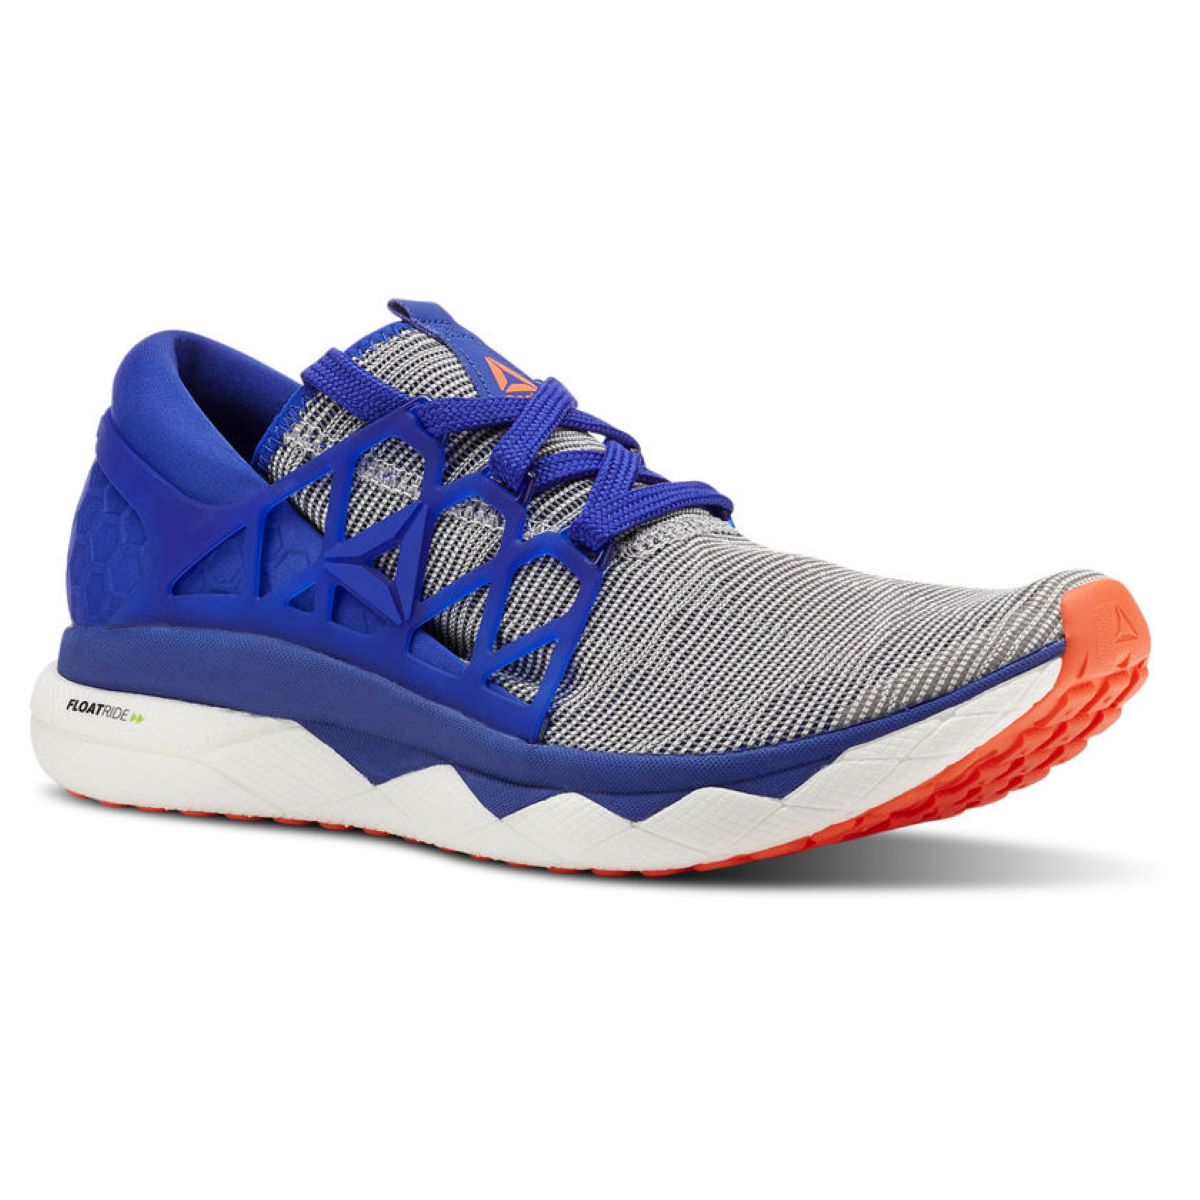 Reebok Reebok Floatride Run Flexweave Shoes   Running Shoes